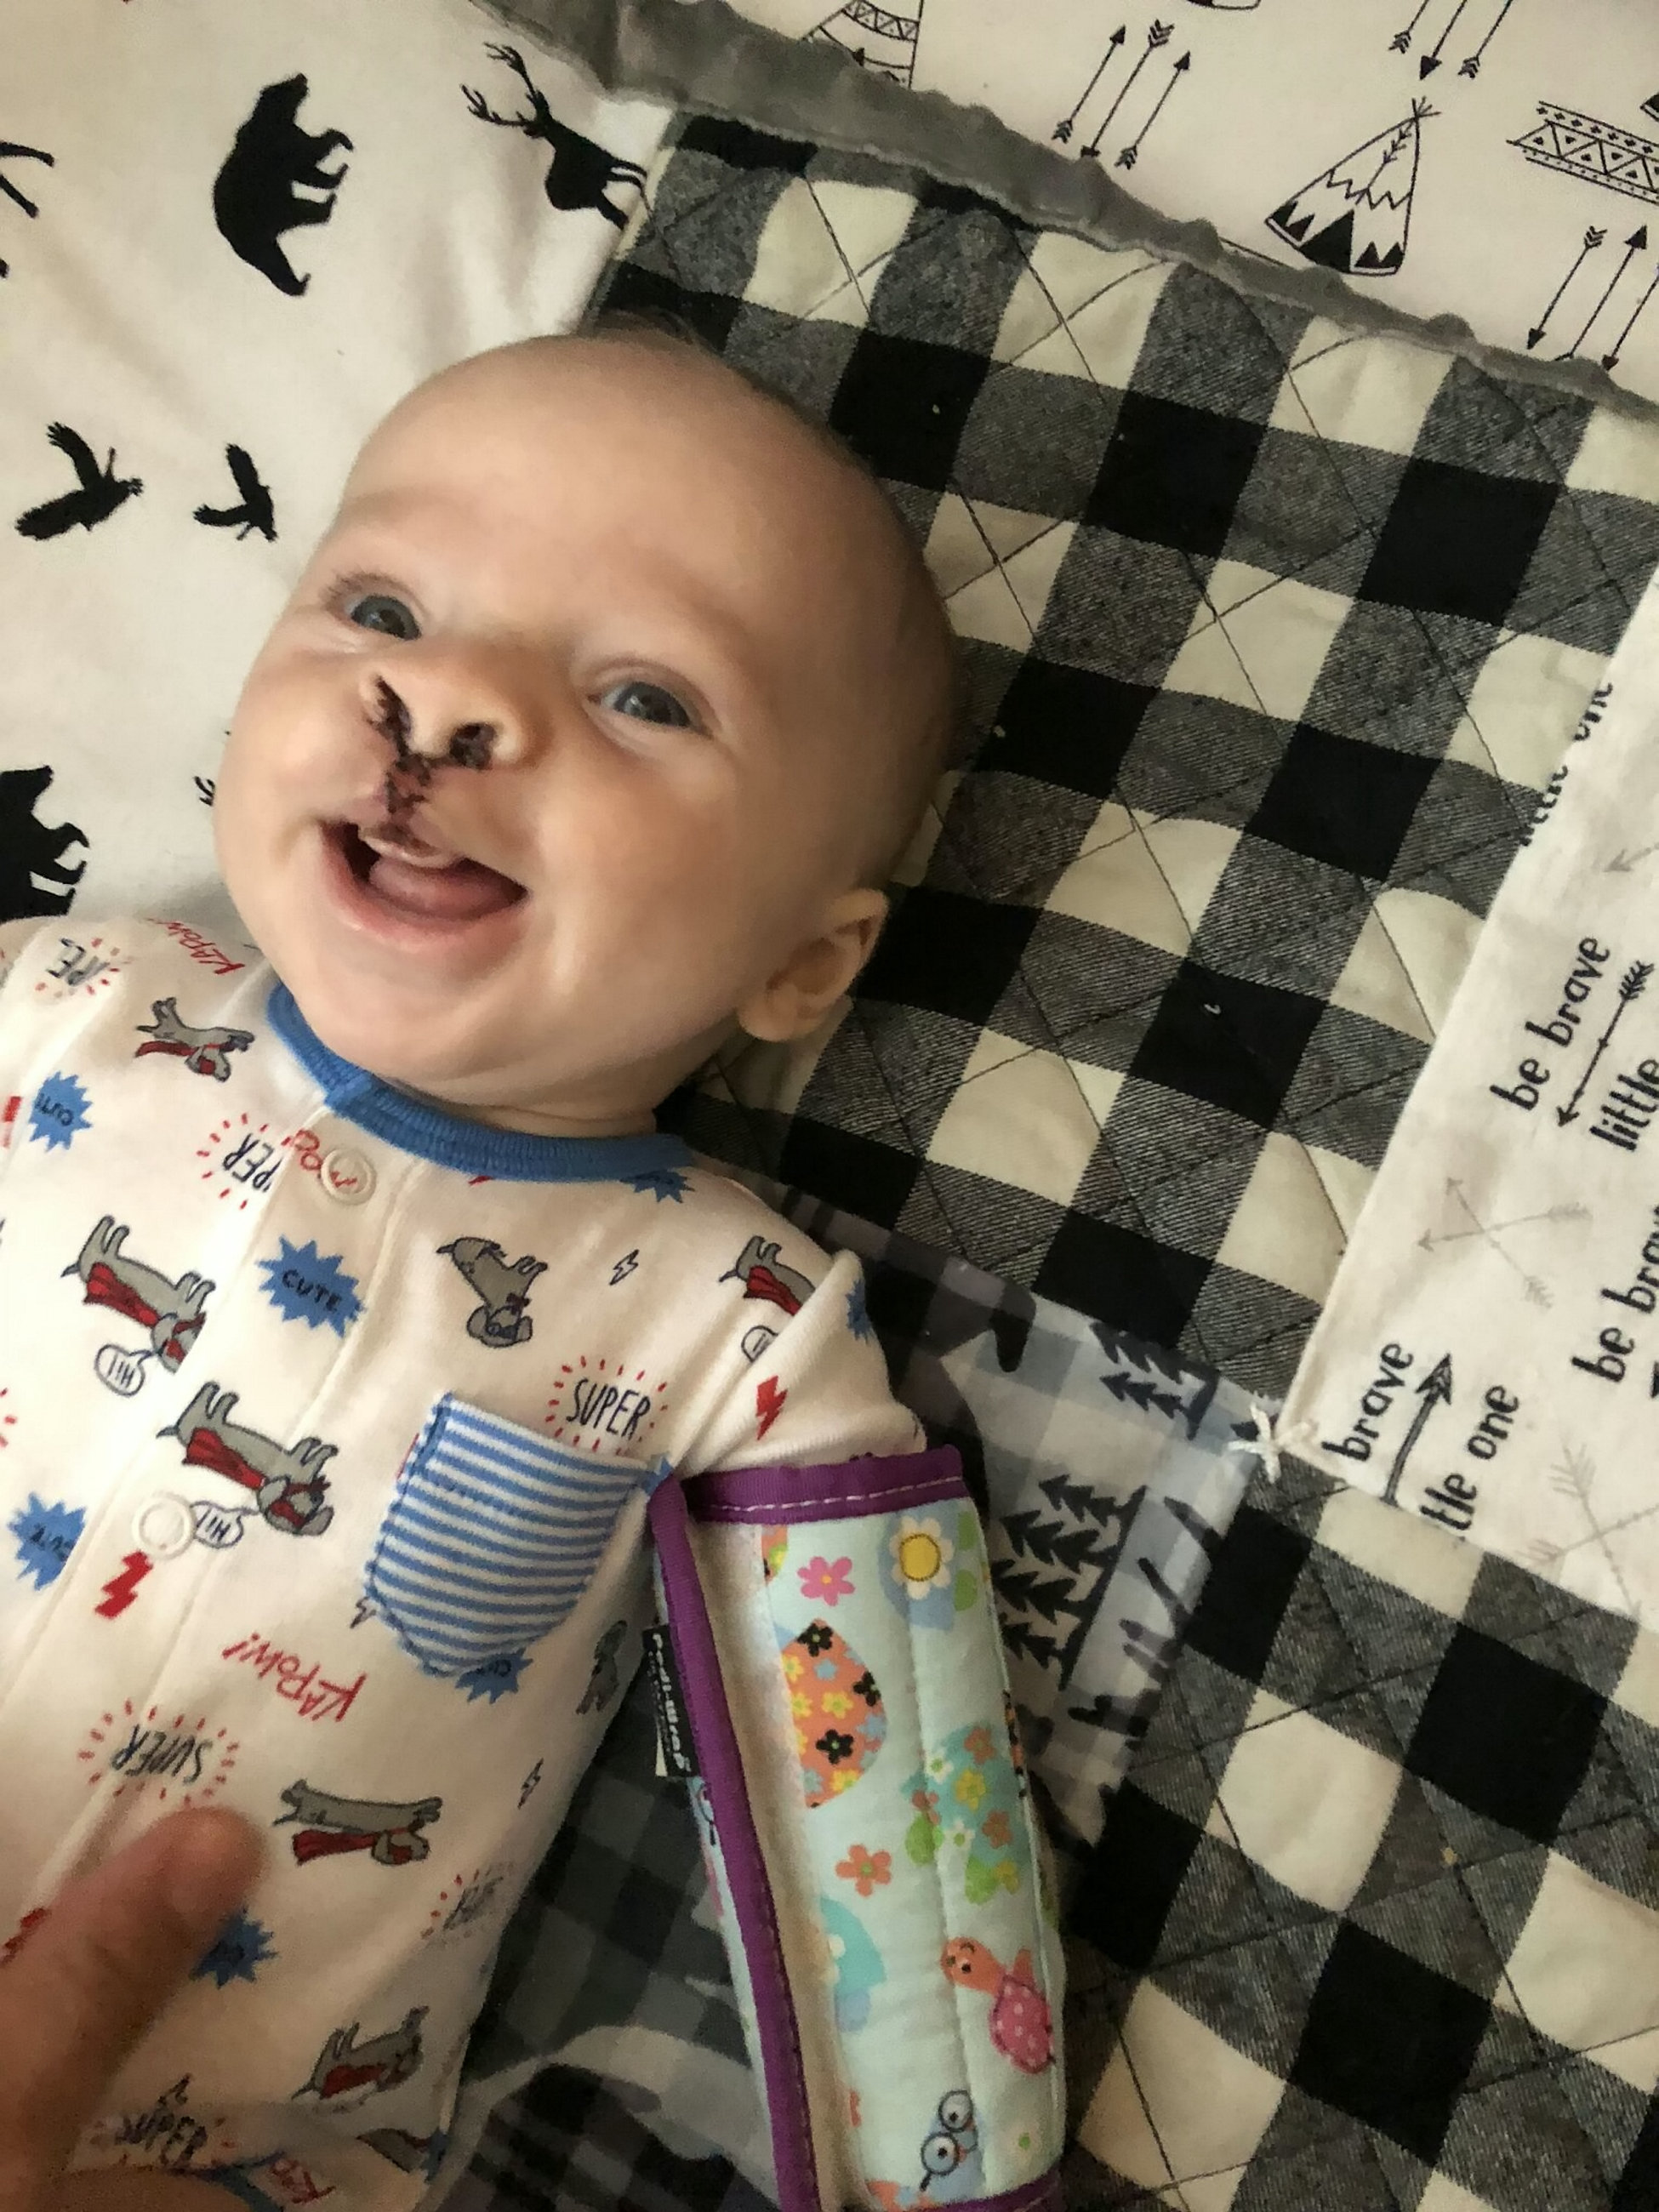 Baby born with cleft palate